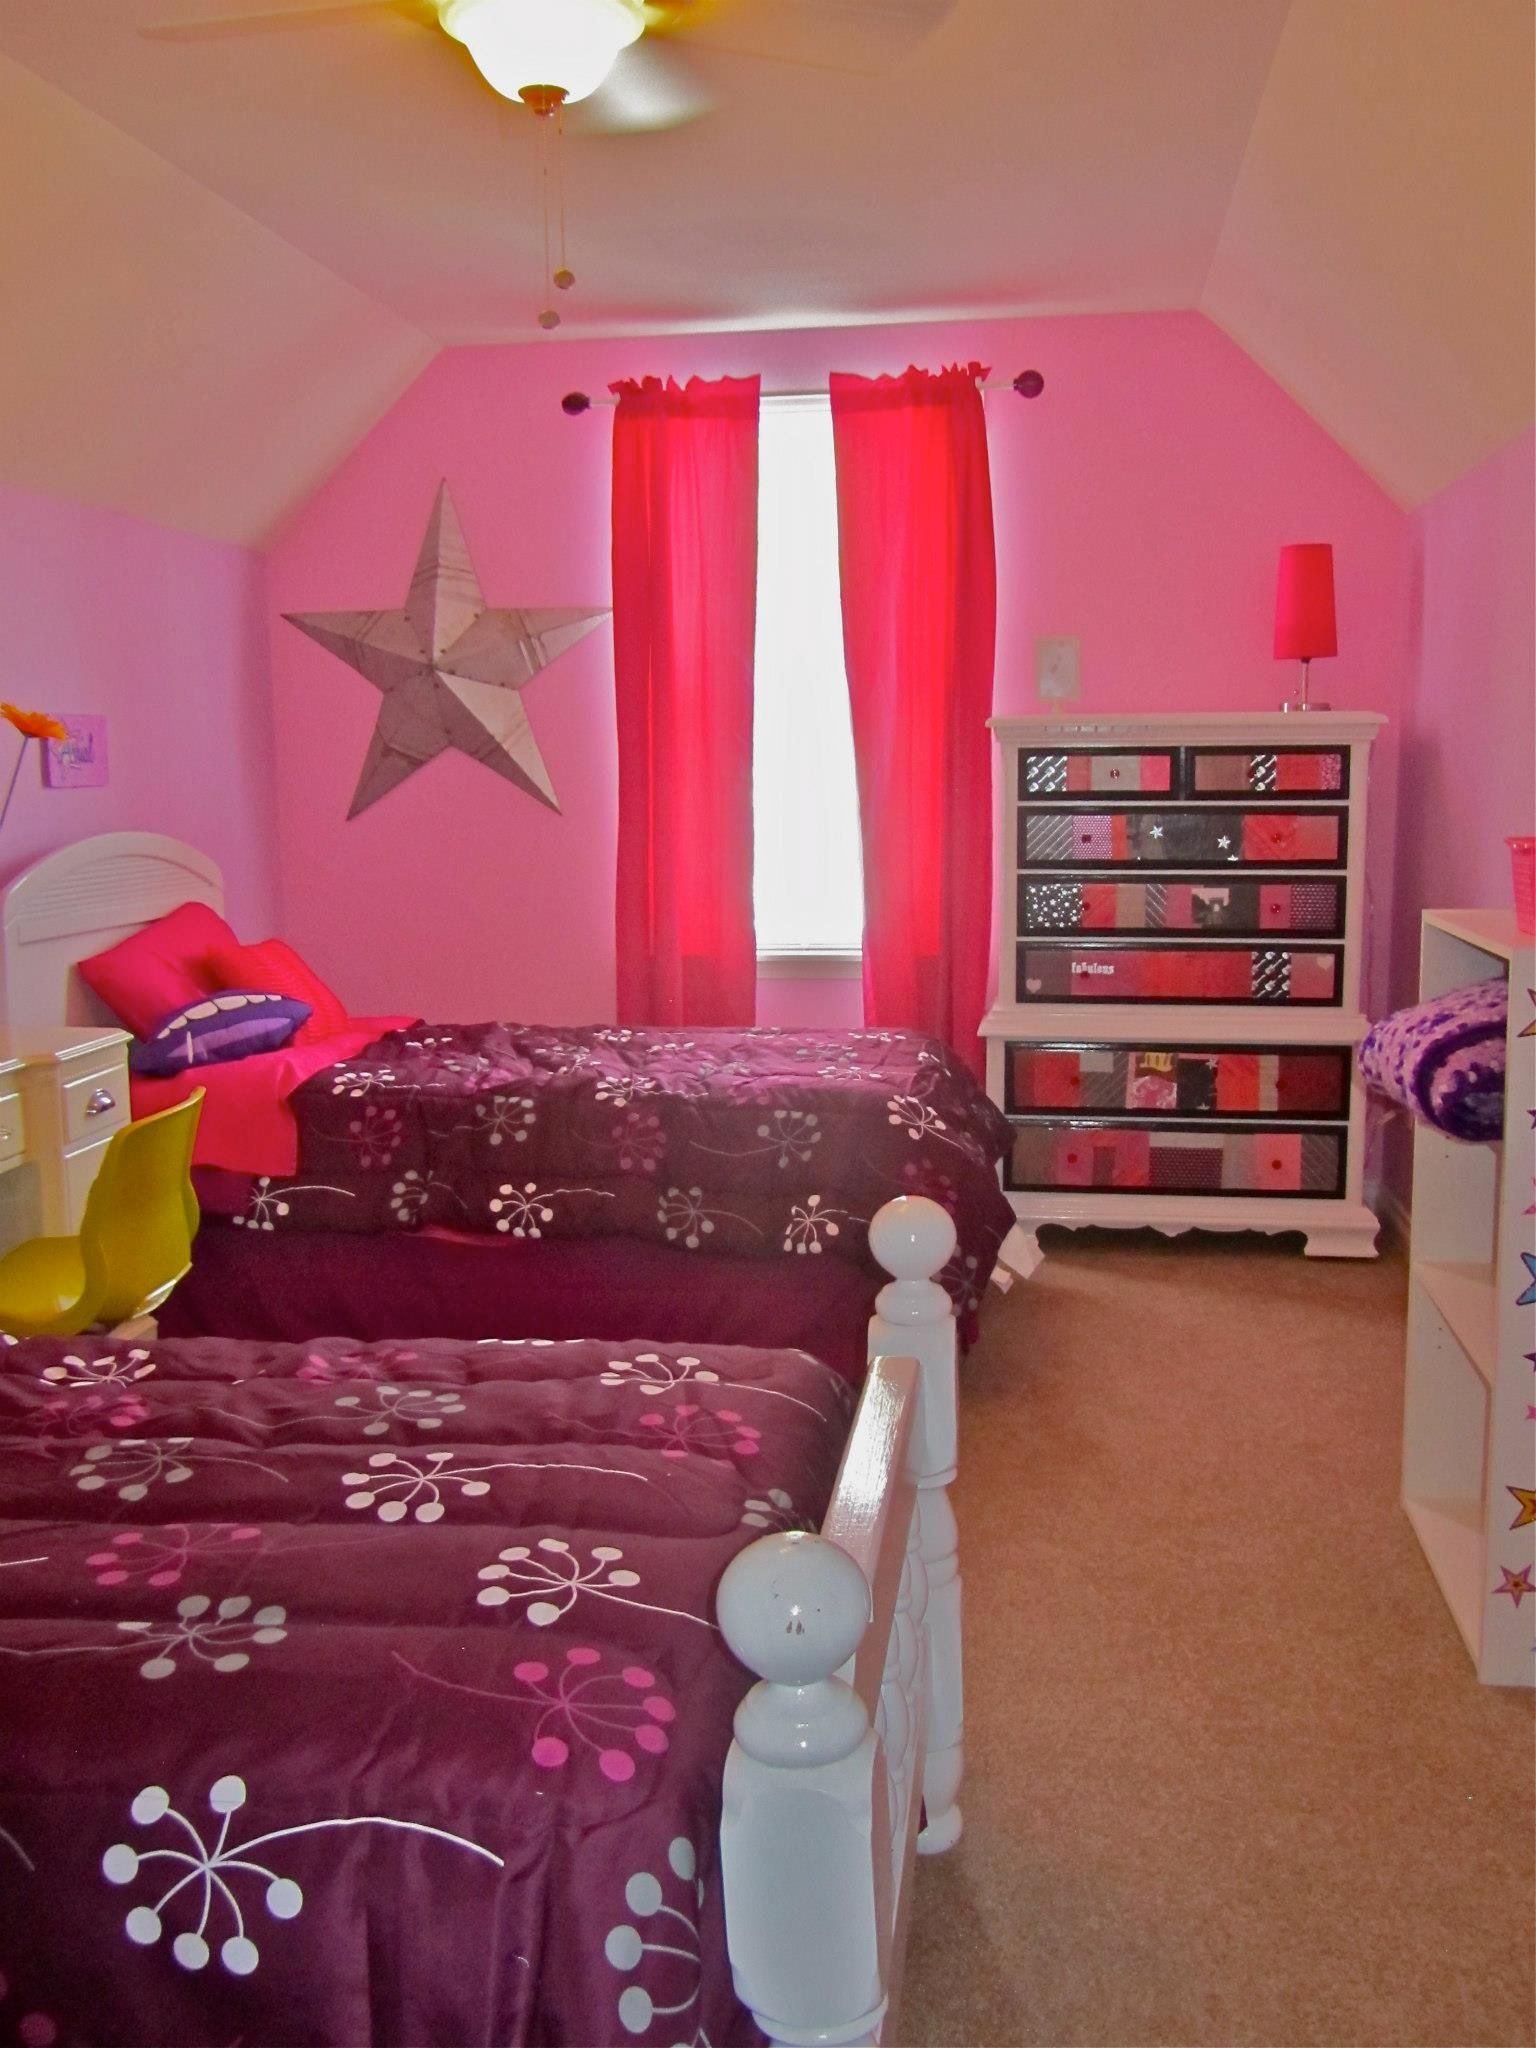 Pink and purple room for girls girls 39 room ideas - Pink and purple room ideas ...